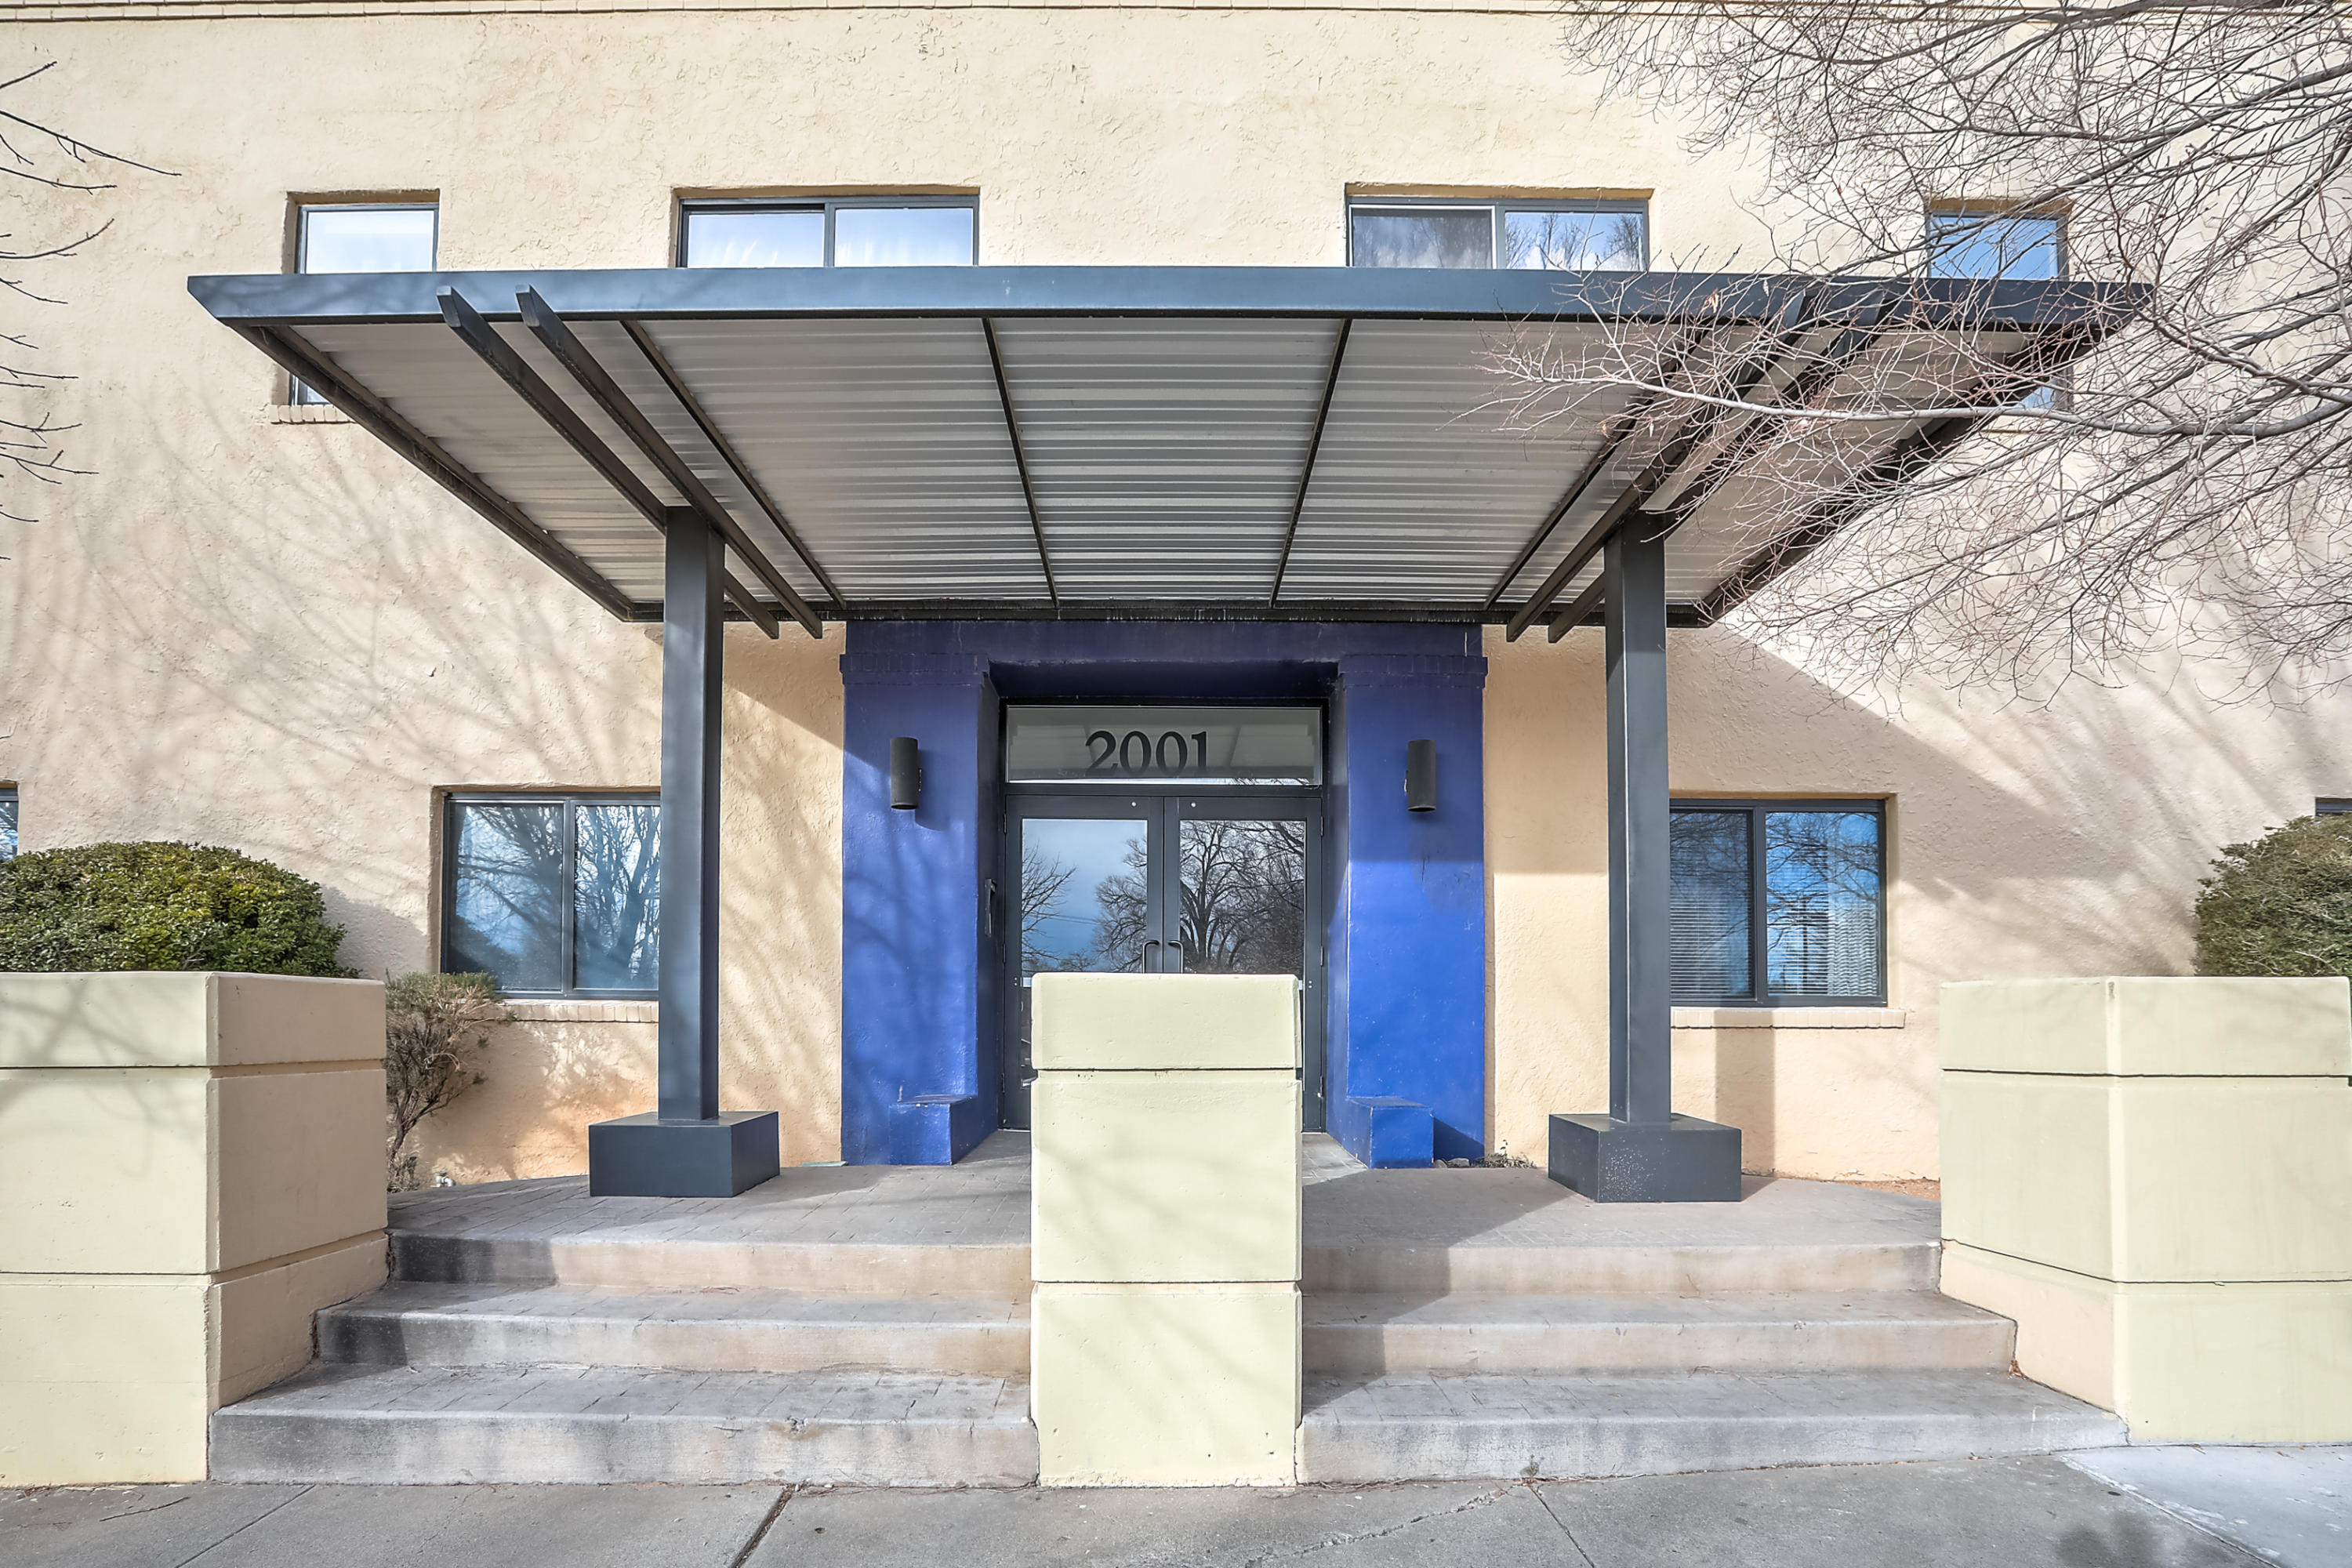 Amazing opportunity to own a modern condo within .25 mile of UNM. Beautiful granite countertops with clerestory windows. Huge skylight lets in lots of natural light . You will fall in love with the open architecture of loft living. Currently a tenant with lease until July 2021. No property disclosure. Property is being sold ''AS IS''.  Viewings of the property subject to an accepted offer, and 24 hours notice.